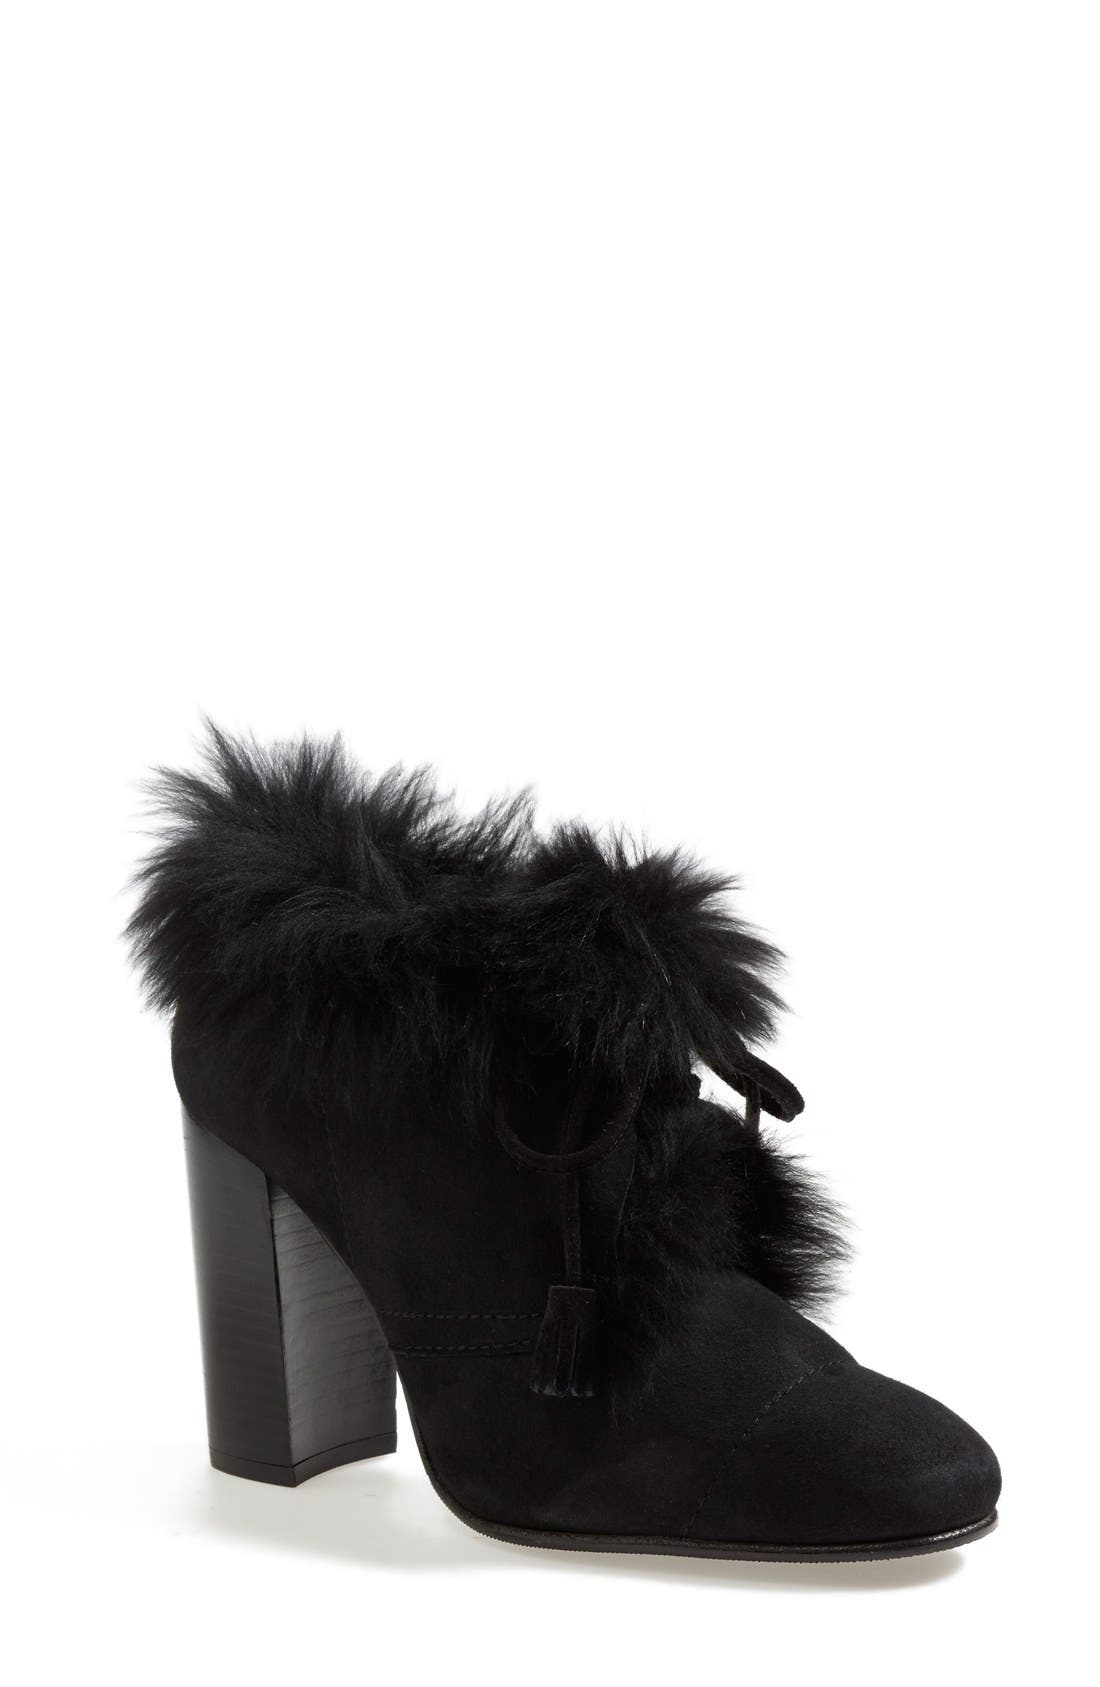 Alternate Image 1 Selected - Pedro Garcia 'Barbara' Genuine Shearling & Leather Bootie (Women)